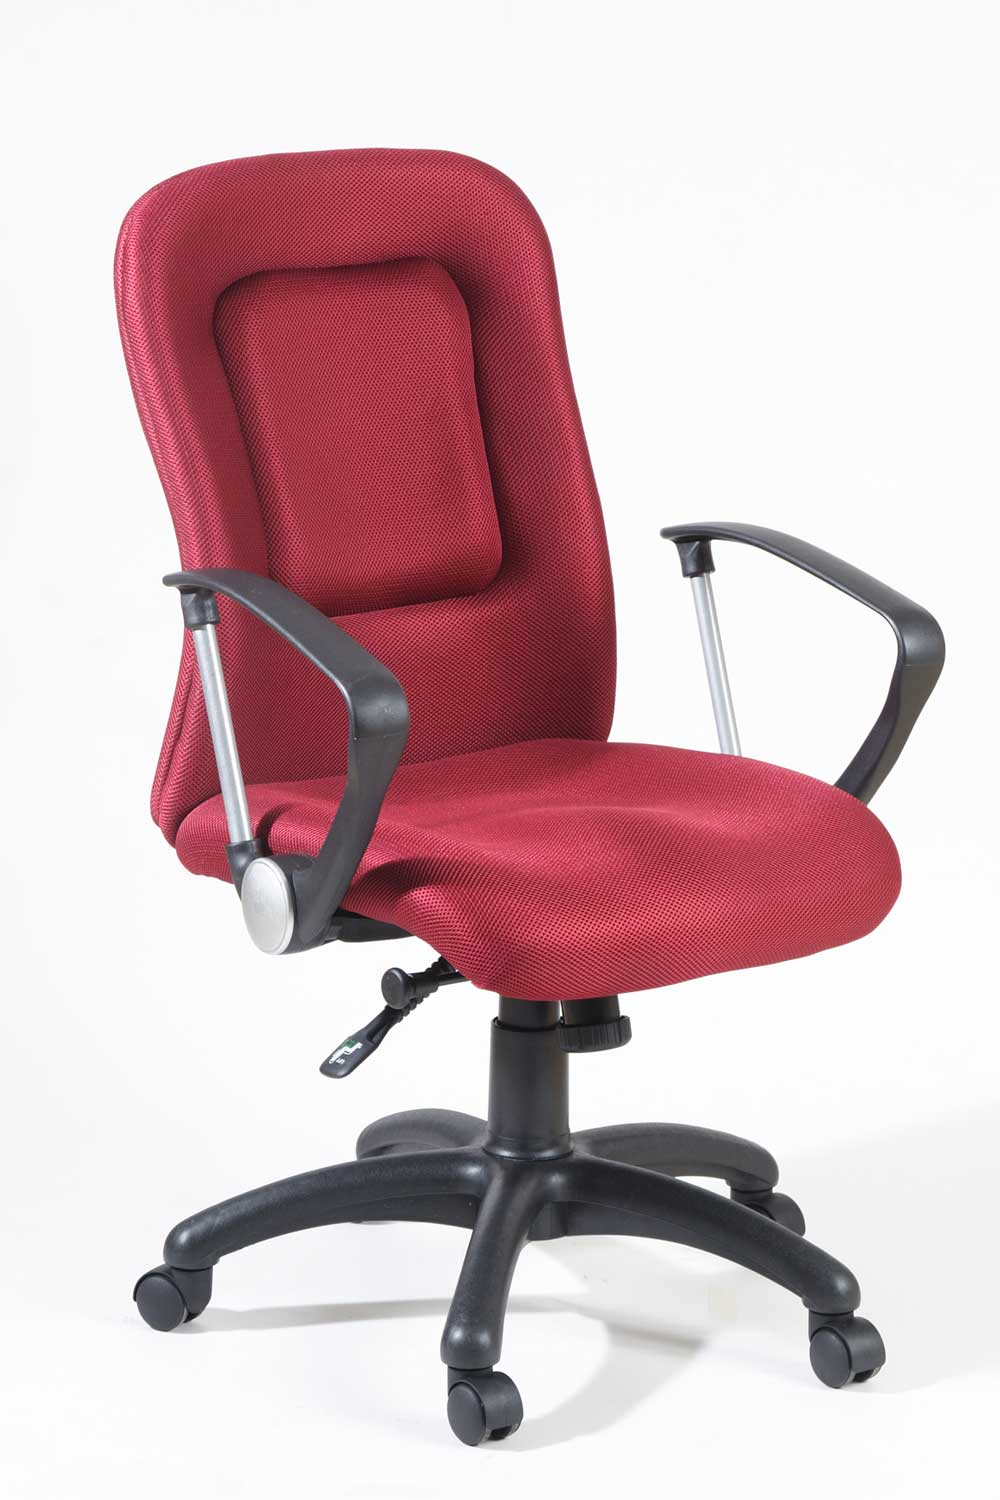 Luxury red office chair in ergonomic design